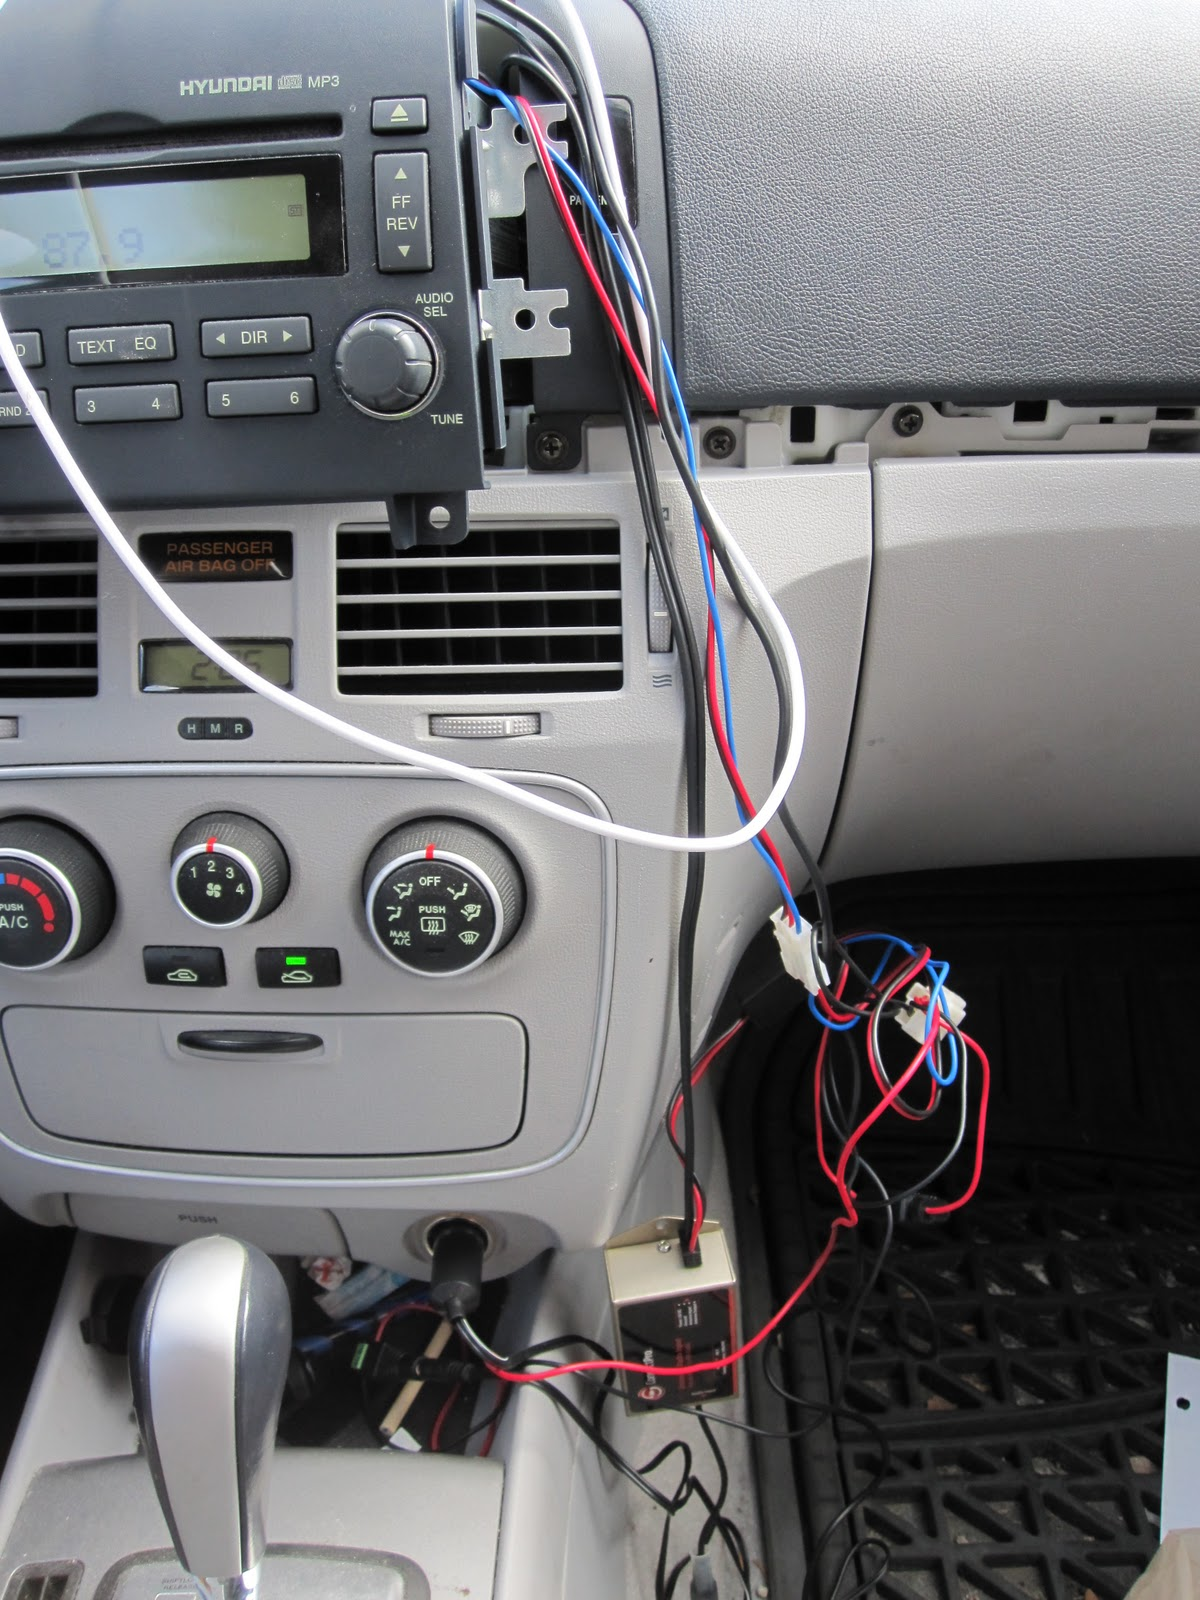 2007 Hyundai Sonata Aux Input Mp3 03 Wiring Diagram I Ran The Wires From Box Through A Hole Behind Glove Compartment Wanted To Leave Accessible In Case Needed Change Default Radio